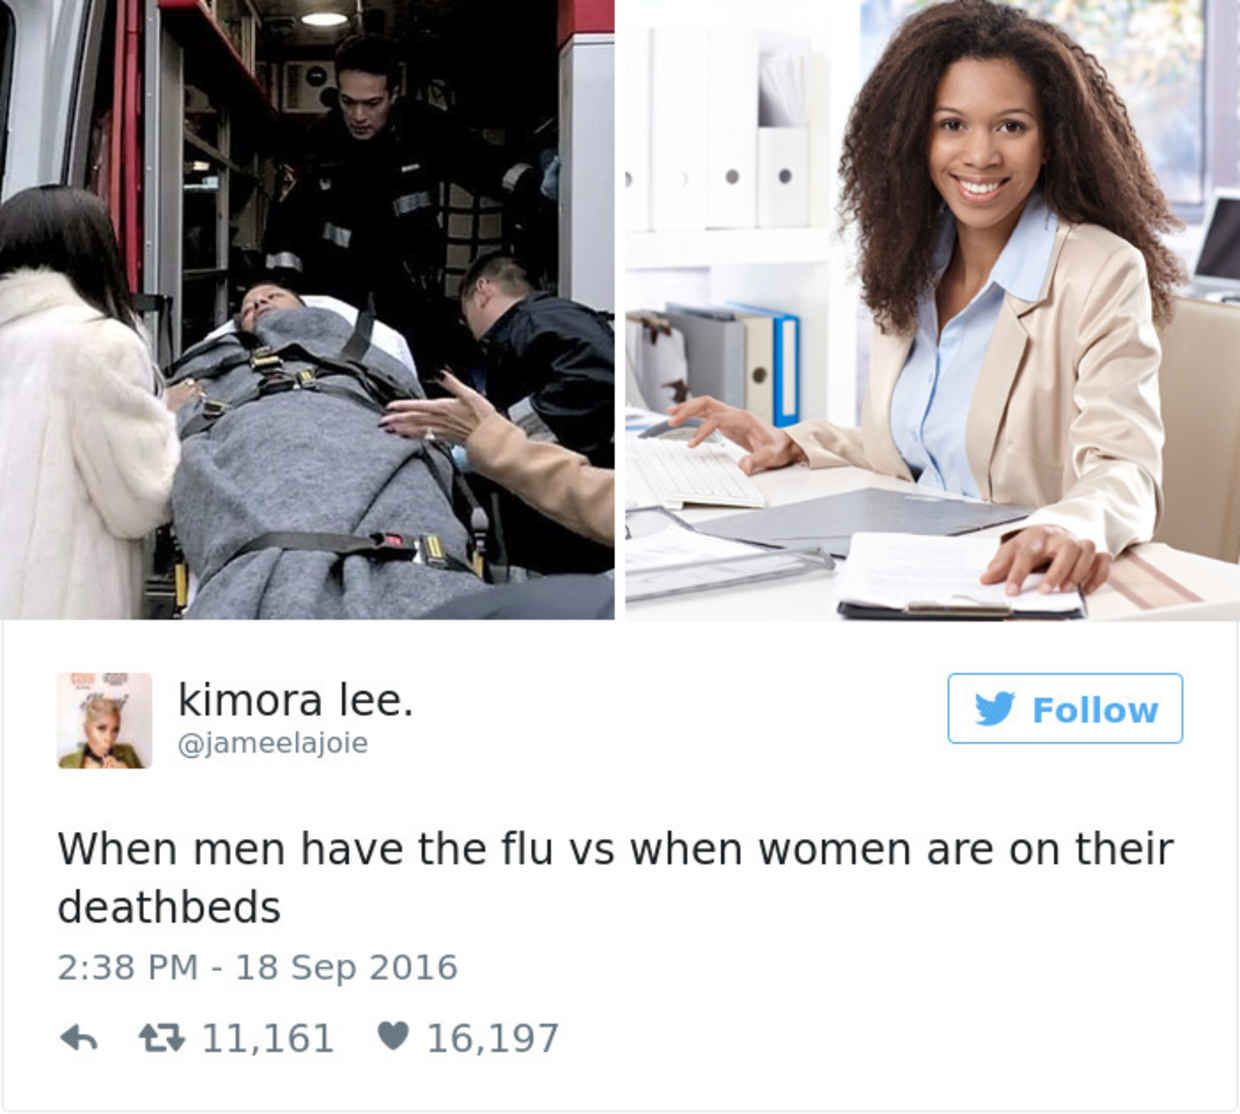 The Funniest Things Tweeted By Women In Womens The O - The 19 funniest things tweeted by women in 2016